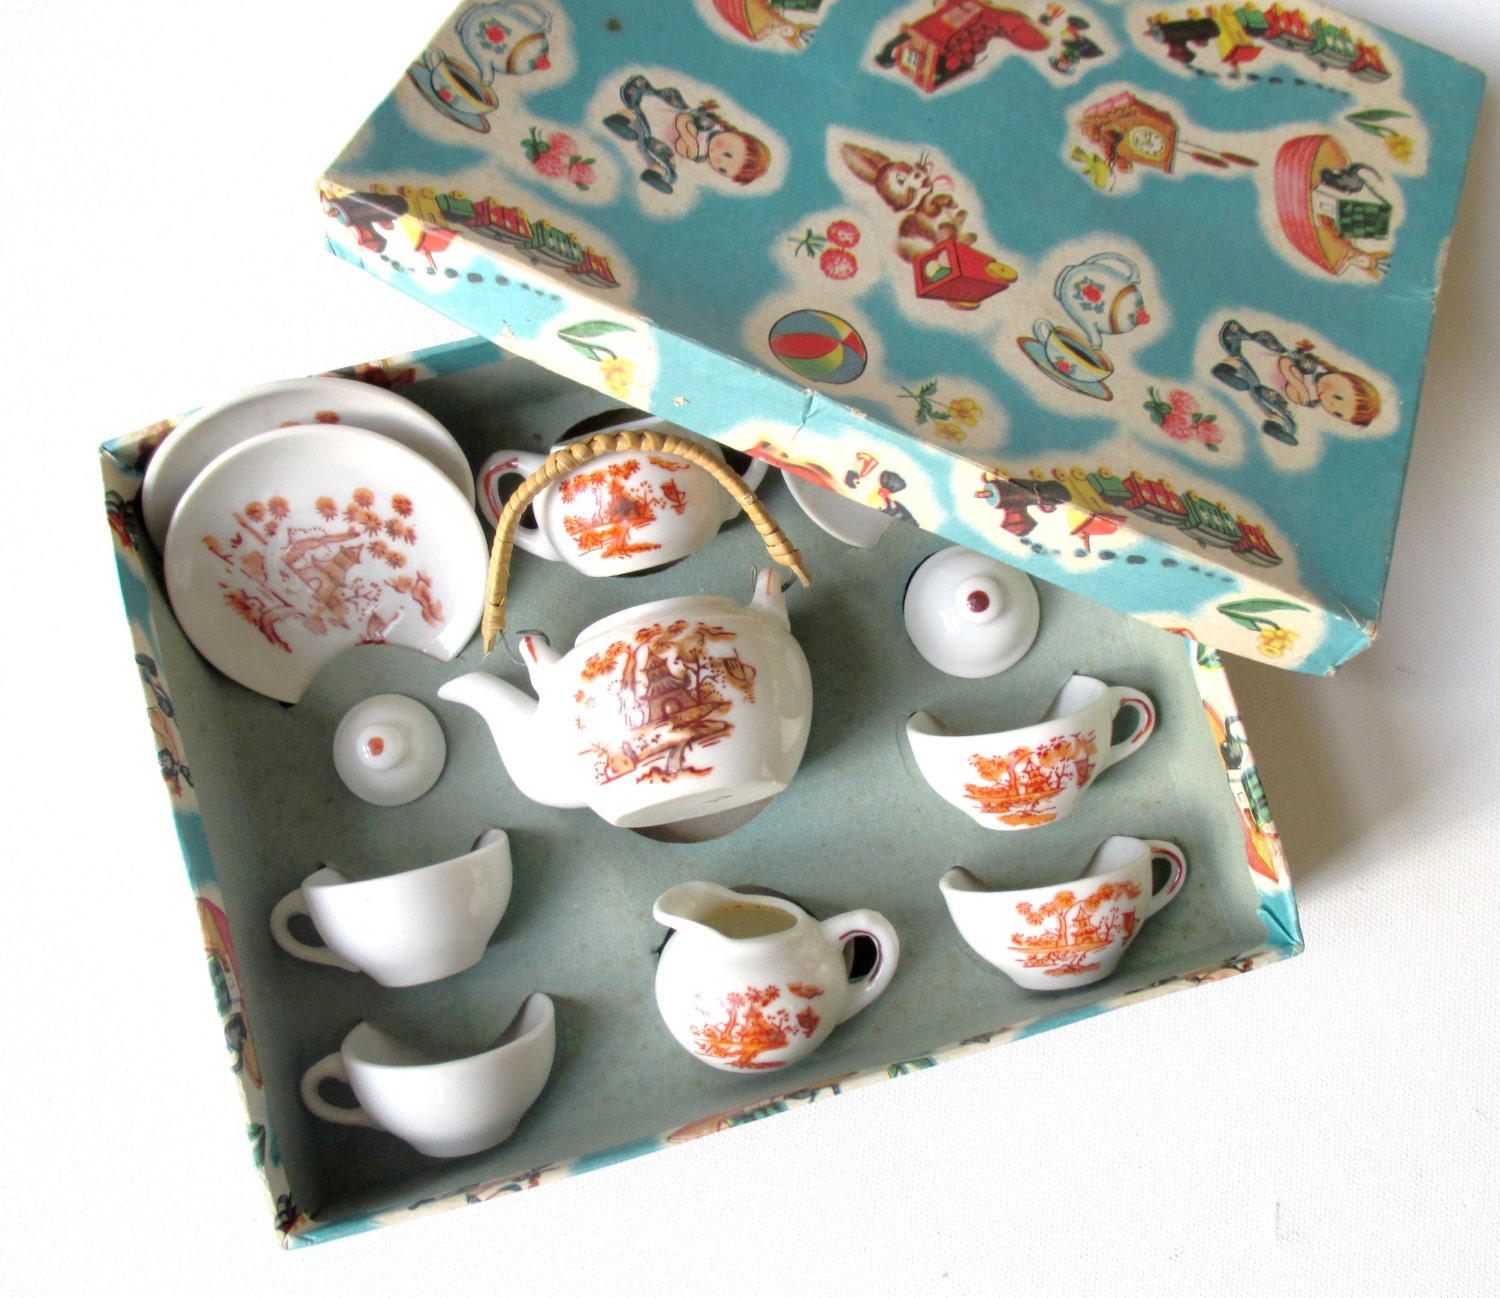 VINTAGE 60's / tea party set / toy tea set / China porcelain / illustrated carboard box / new old stock / collectible - Prettytidyvintage